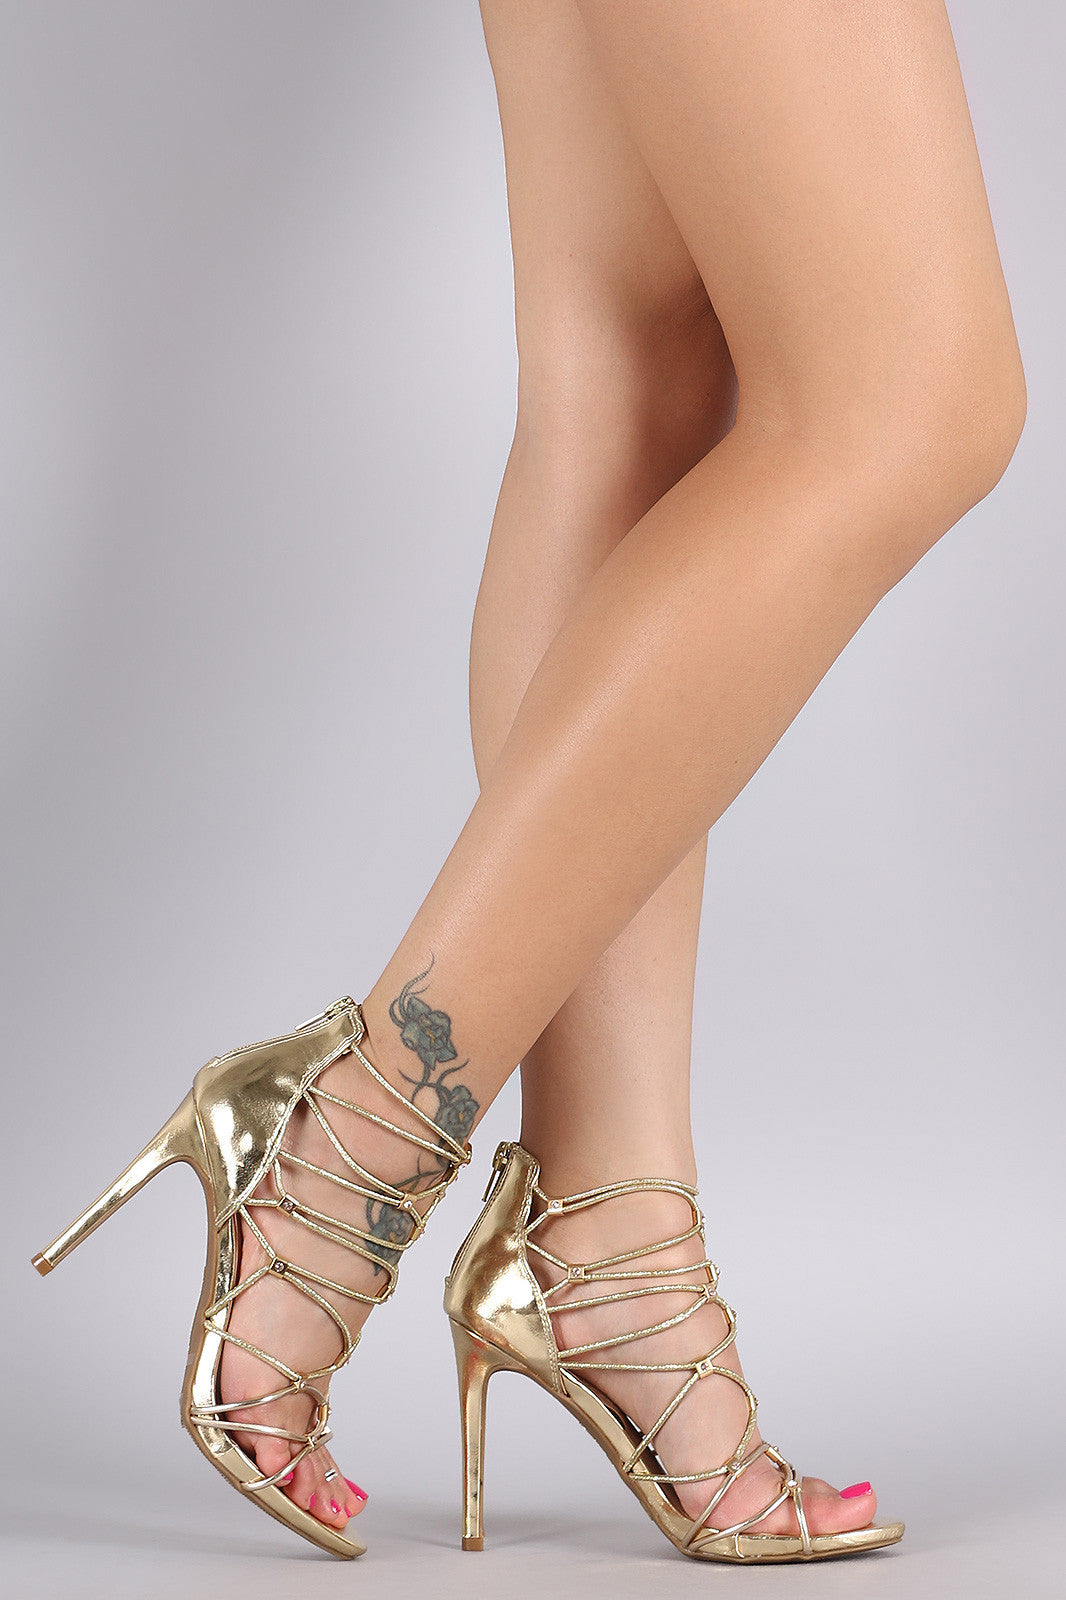 Bamboo Metallic Rhinestone Strappy Stiletto Heel - Thick 'N' Curvy Shop - 2